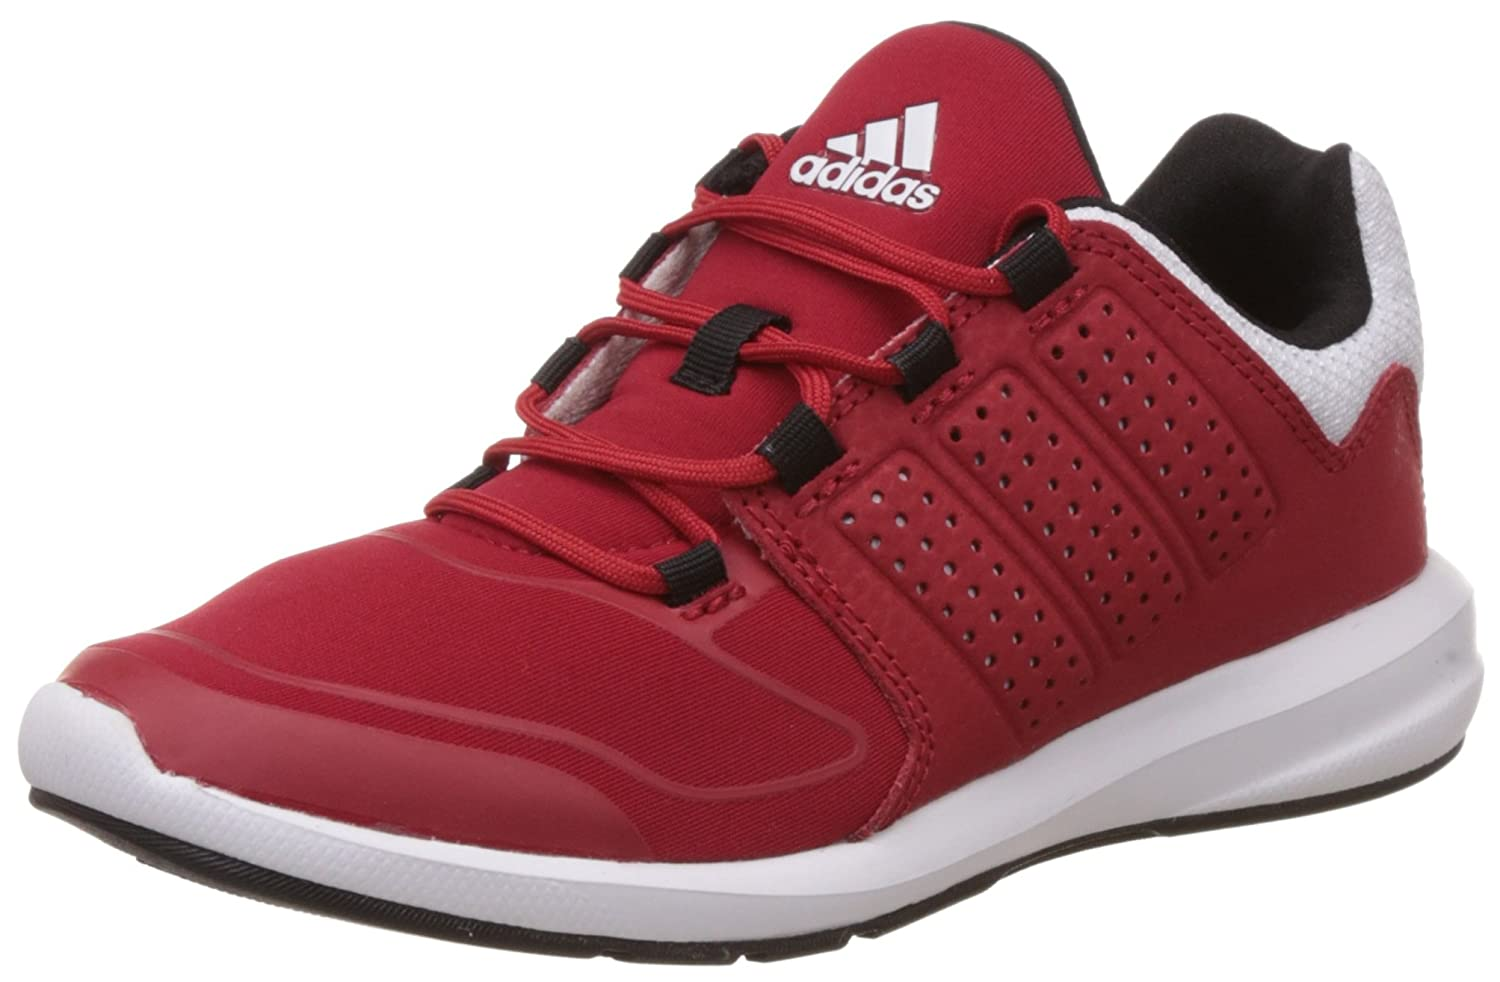 sports shoes adidas